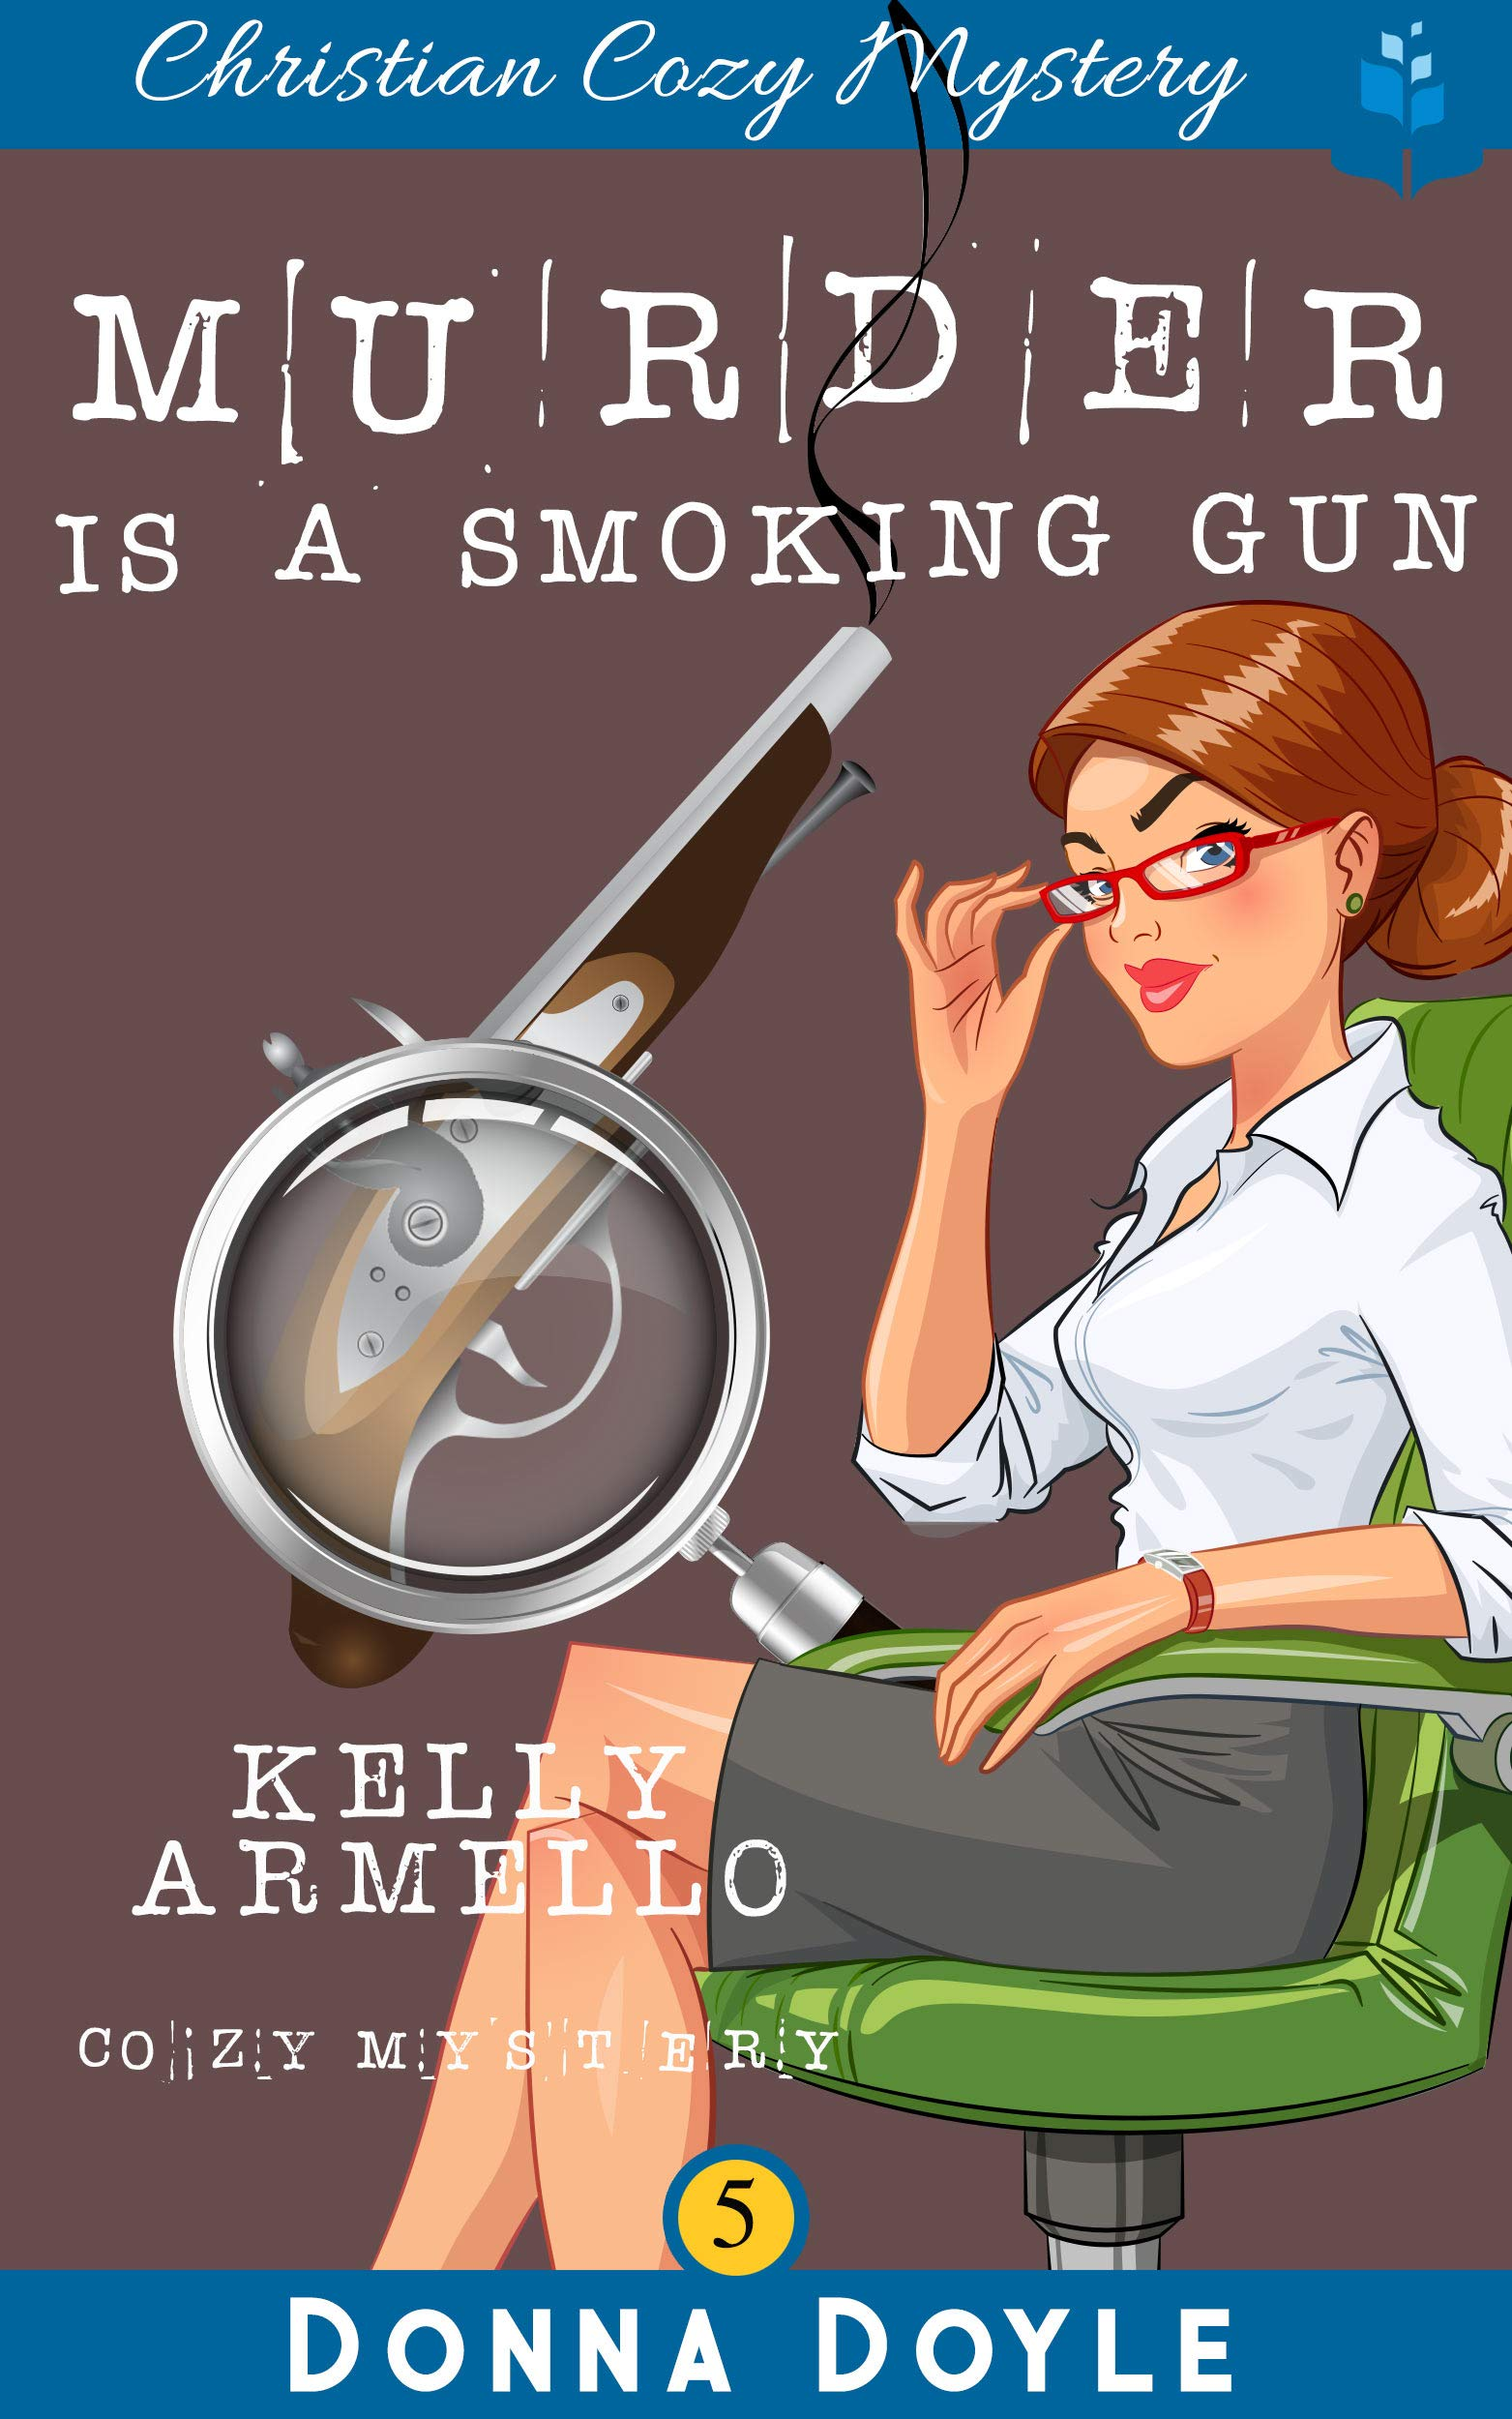 Murder Is A Smoking Gun: Christian Cozy Mystery (A Kelly Armello Mystery Book 5)